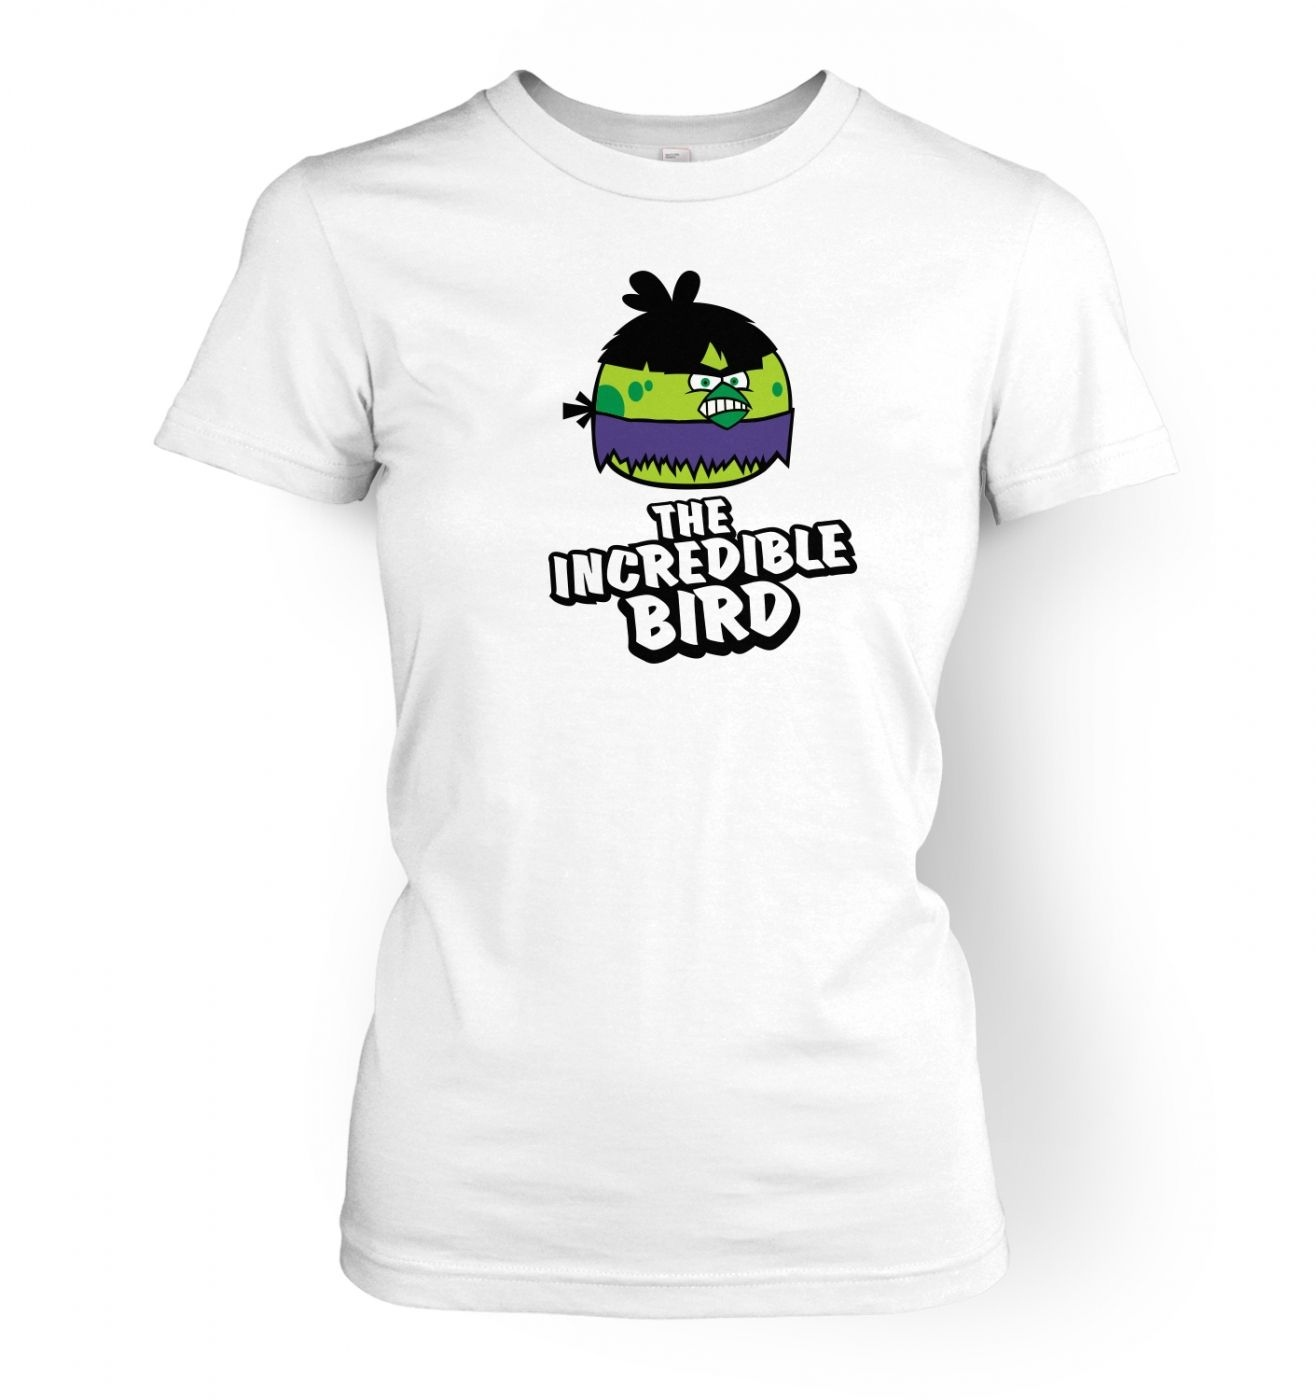 The Incredible Bird Ladies'  T shirt Inspired by Avengers, Angry Birds, The Hulk